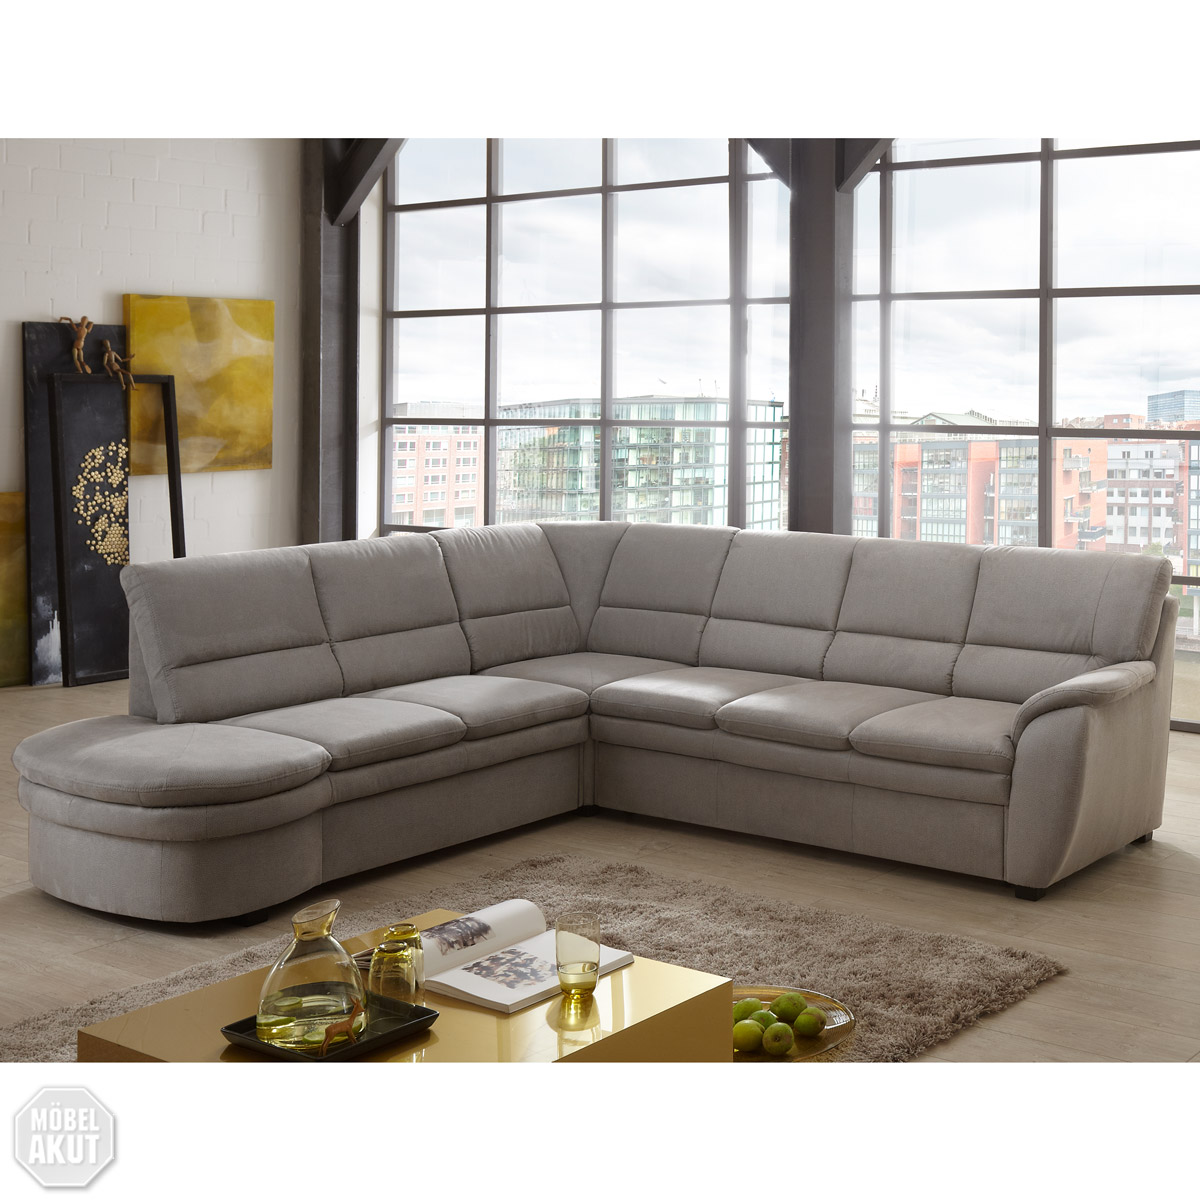 ecksofa ginger sofa wohnlandschaft grau mit bettfunktion relaxfunktion links ebay. Black Bedroom Furniture Sets. Home Design Ideas